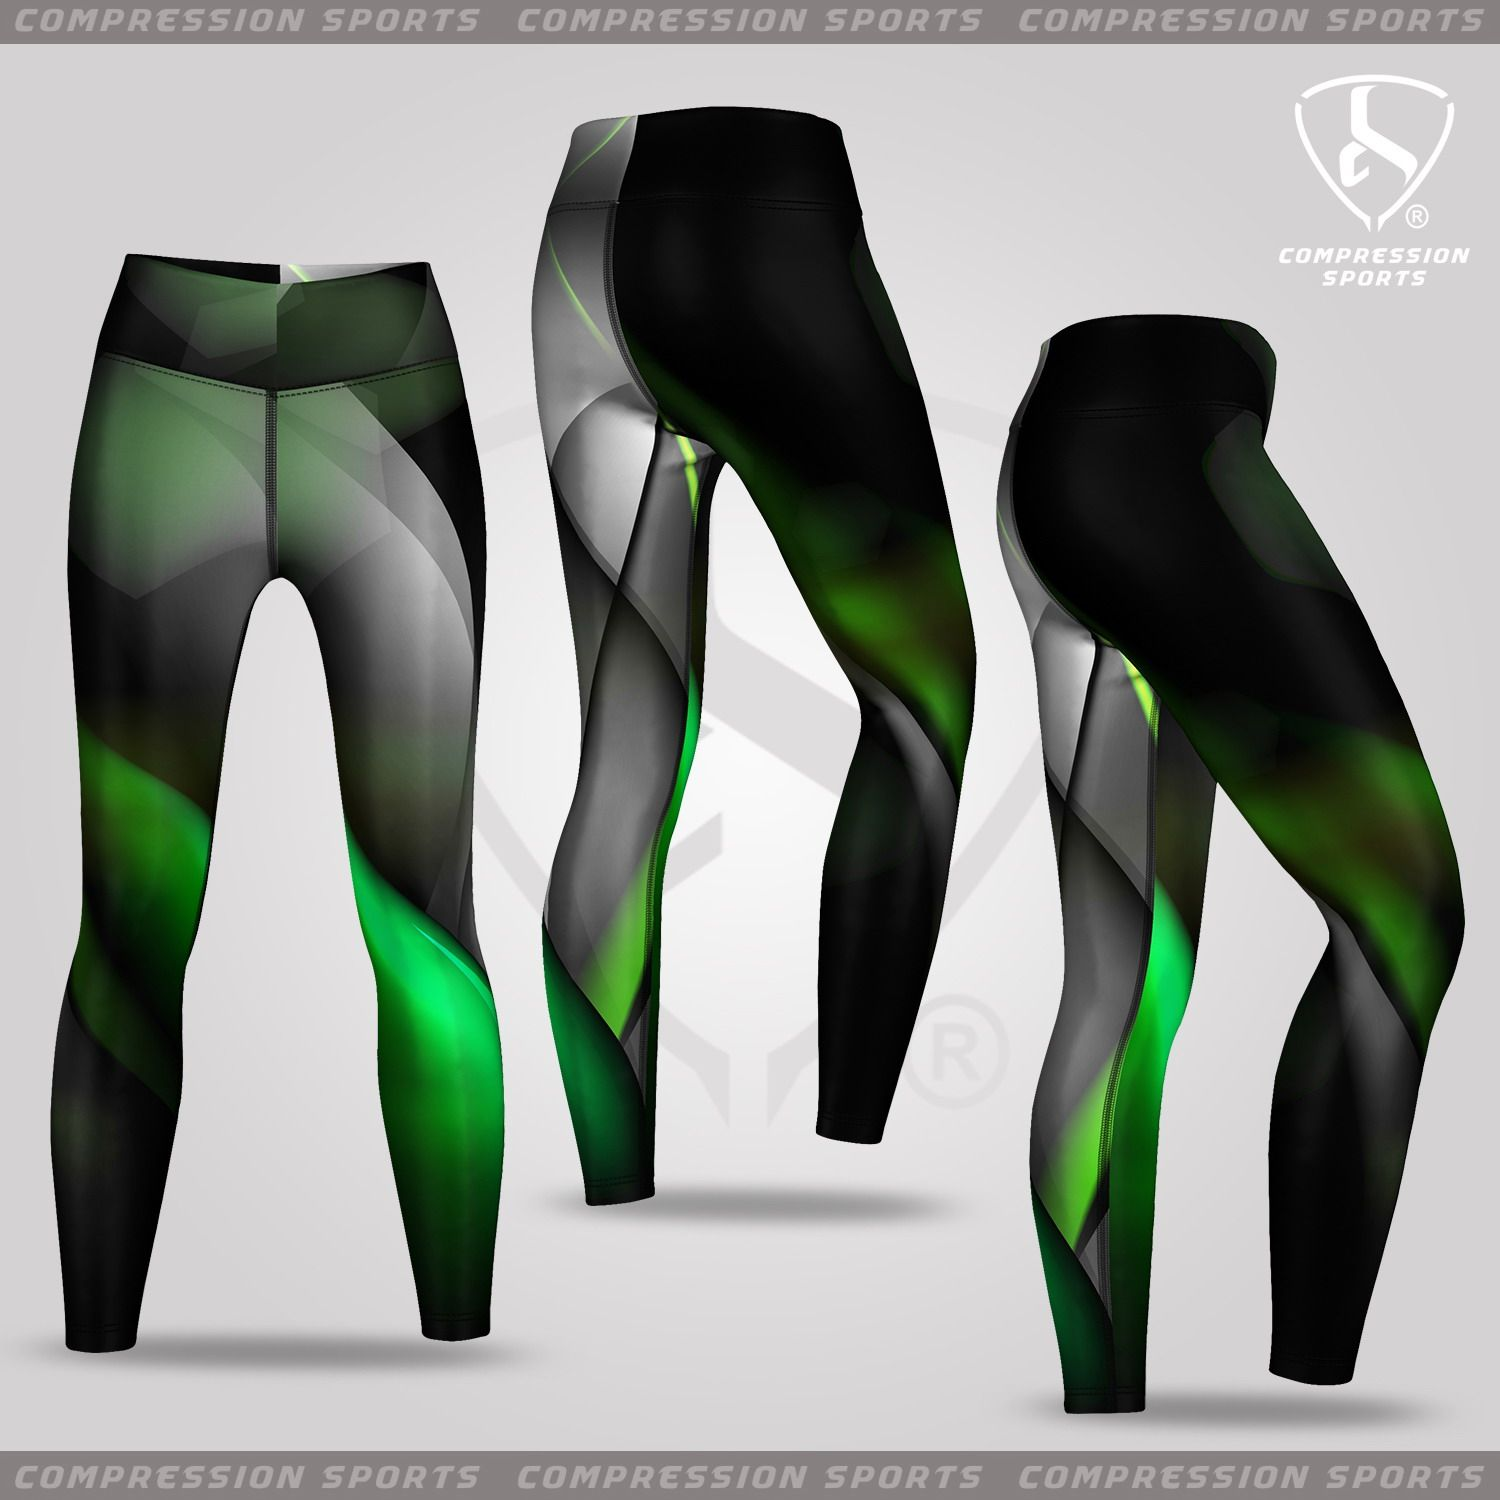 0453ff5d80163 Women fitness legging Made of Sublimation printed Lycra fabric. Flat lock  stitching. Elasticated waist. WE CAN MAKE THIS FITNESS LEGGING WITH YOUR  CUSTOM ...